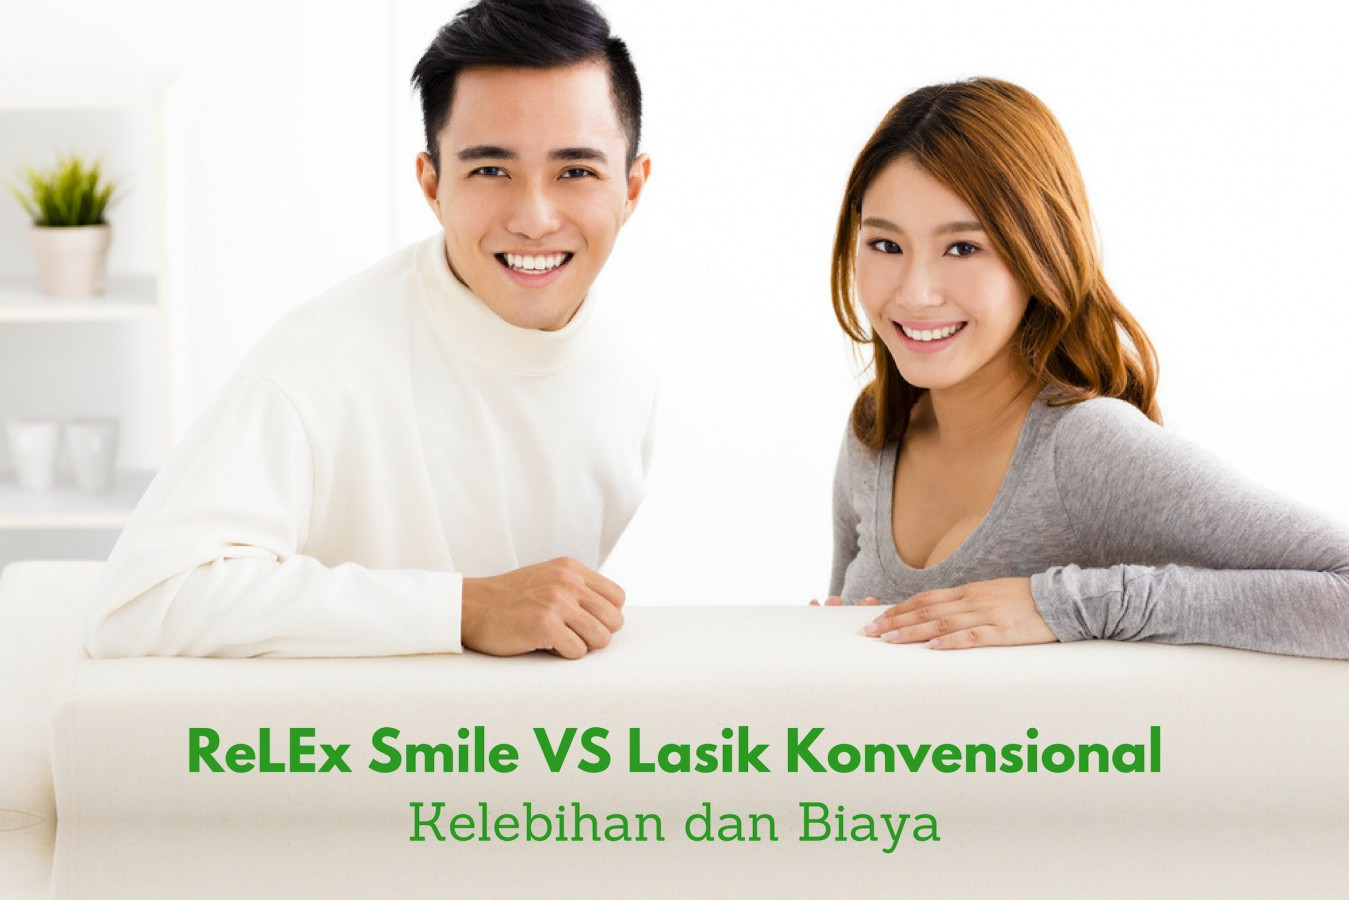 relex smile vs lasik konvensional